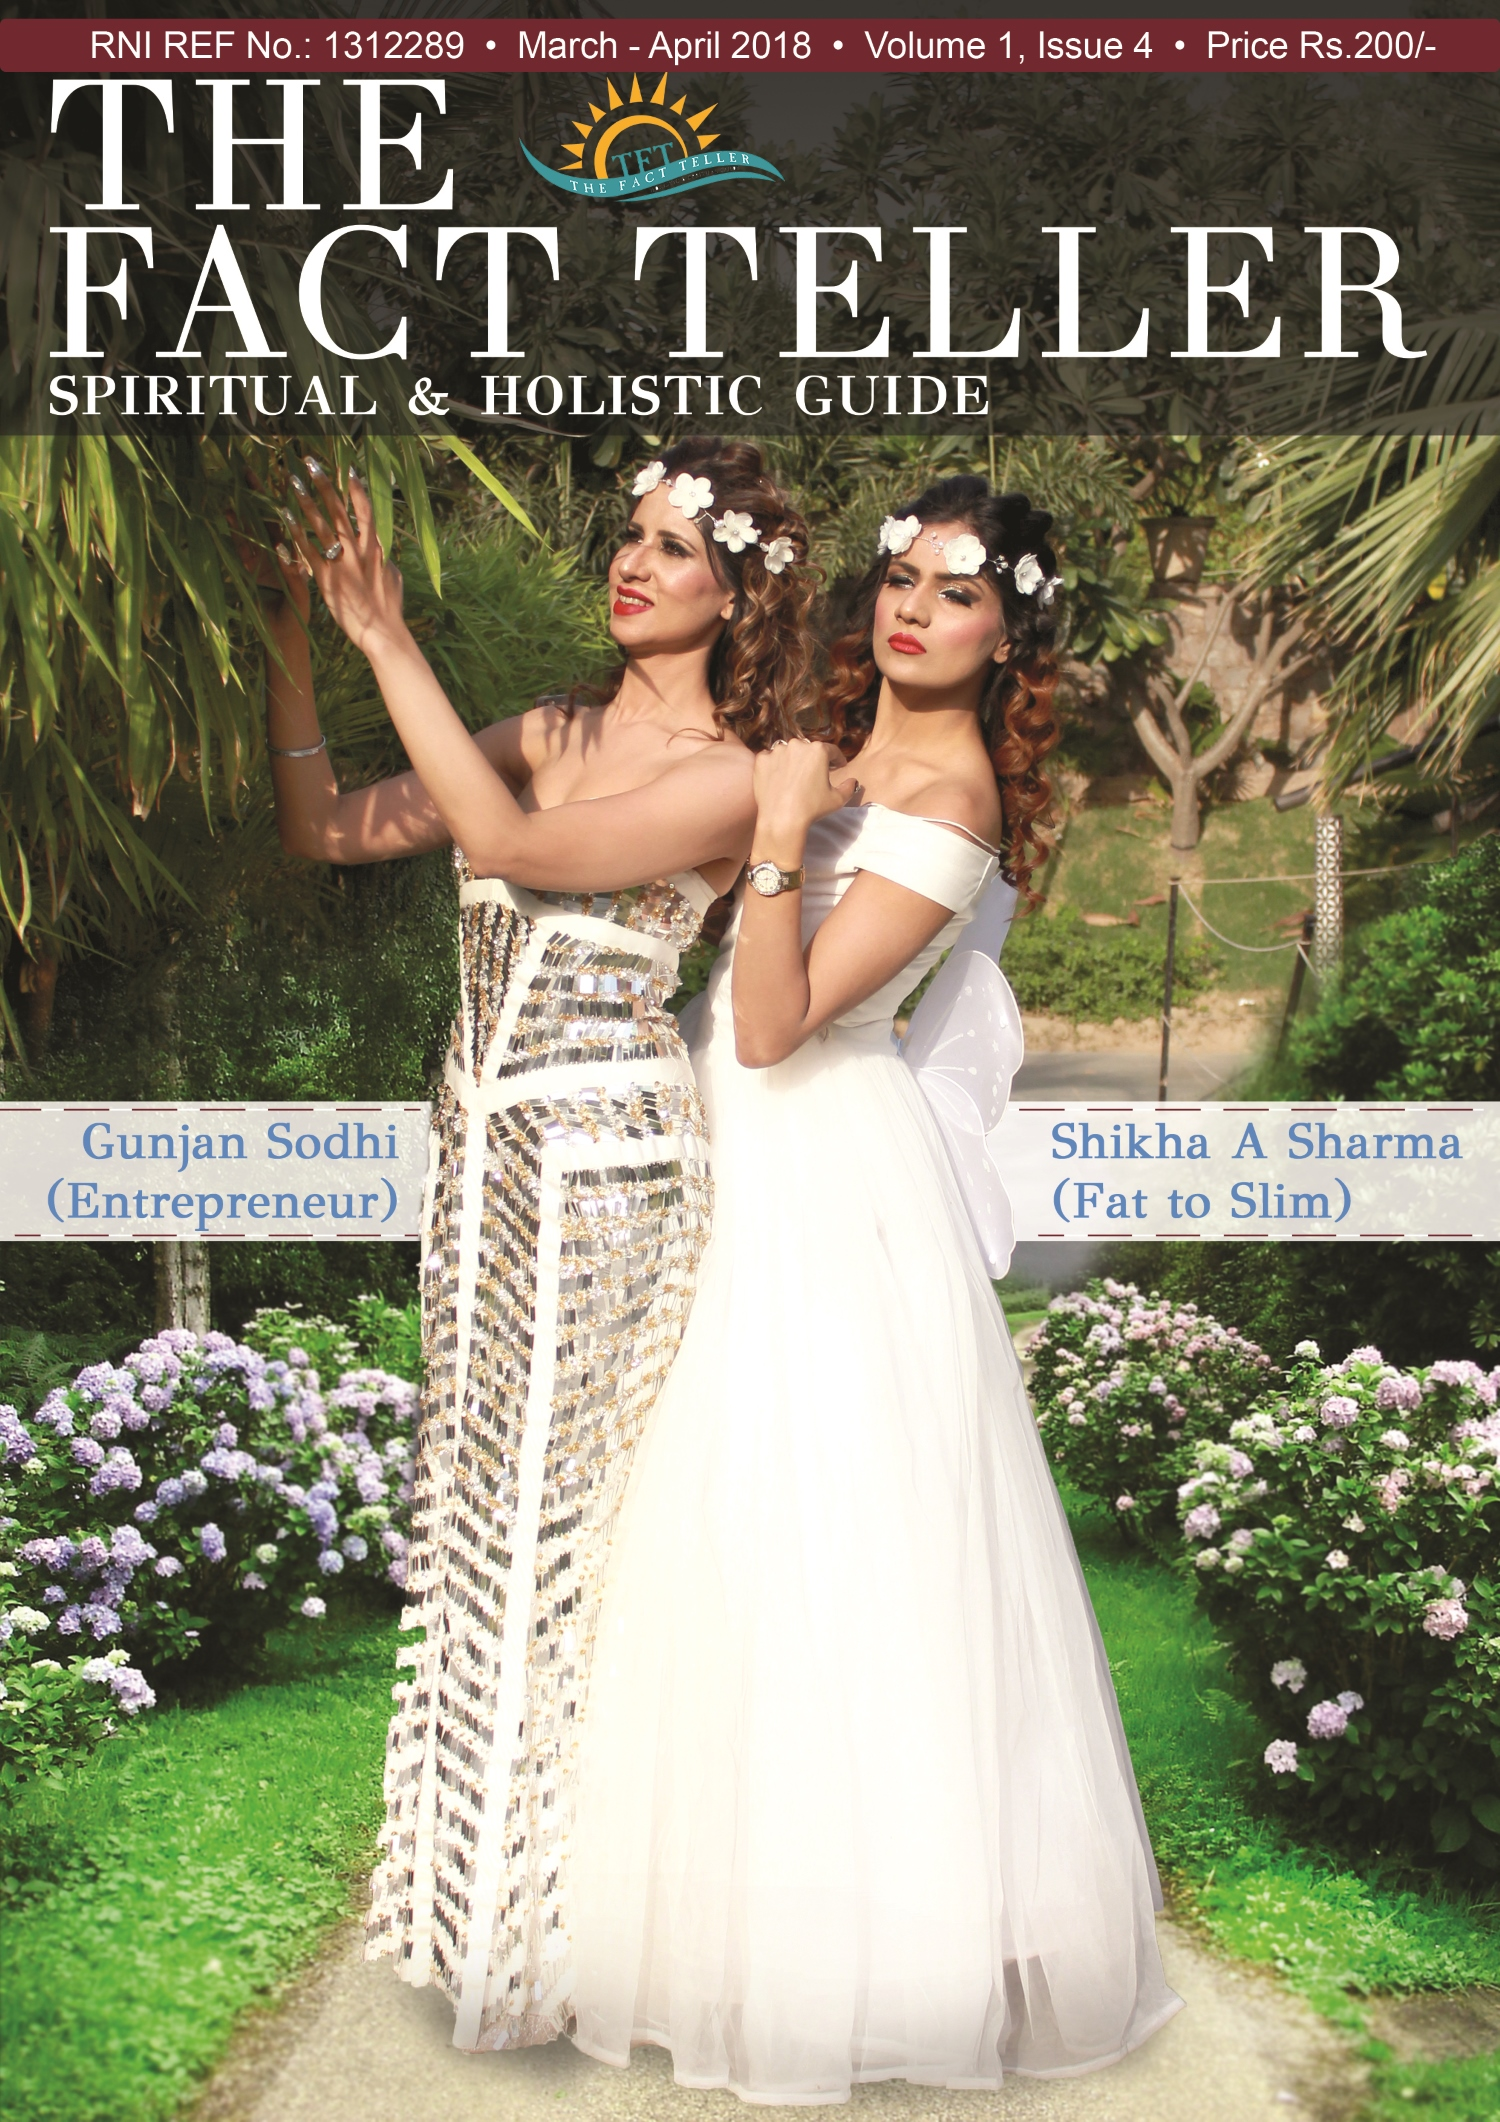 4 FINAL COVER TFT - National Summit on Holistic Sciences & Wellness followed by Karmic Awards 2018 - A Day for Peace & Knowledge by The Fact Teller Magazine